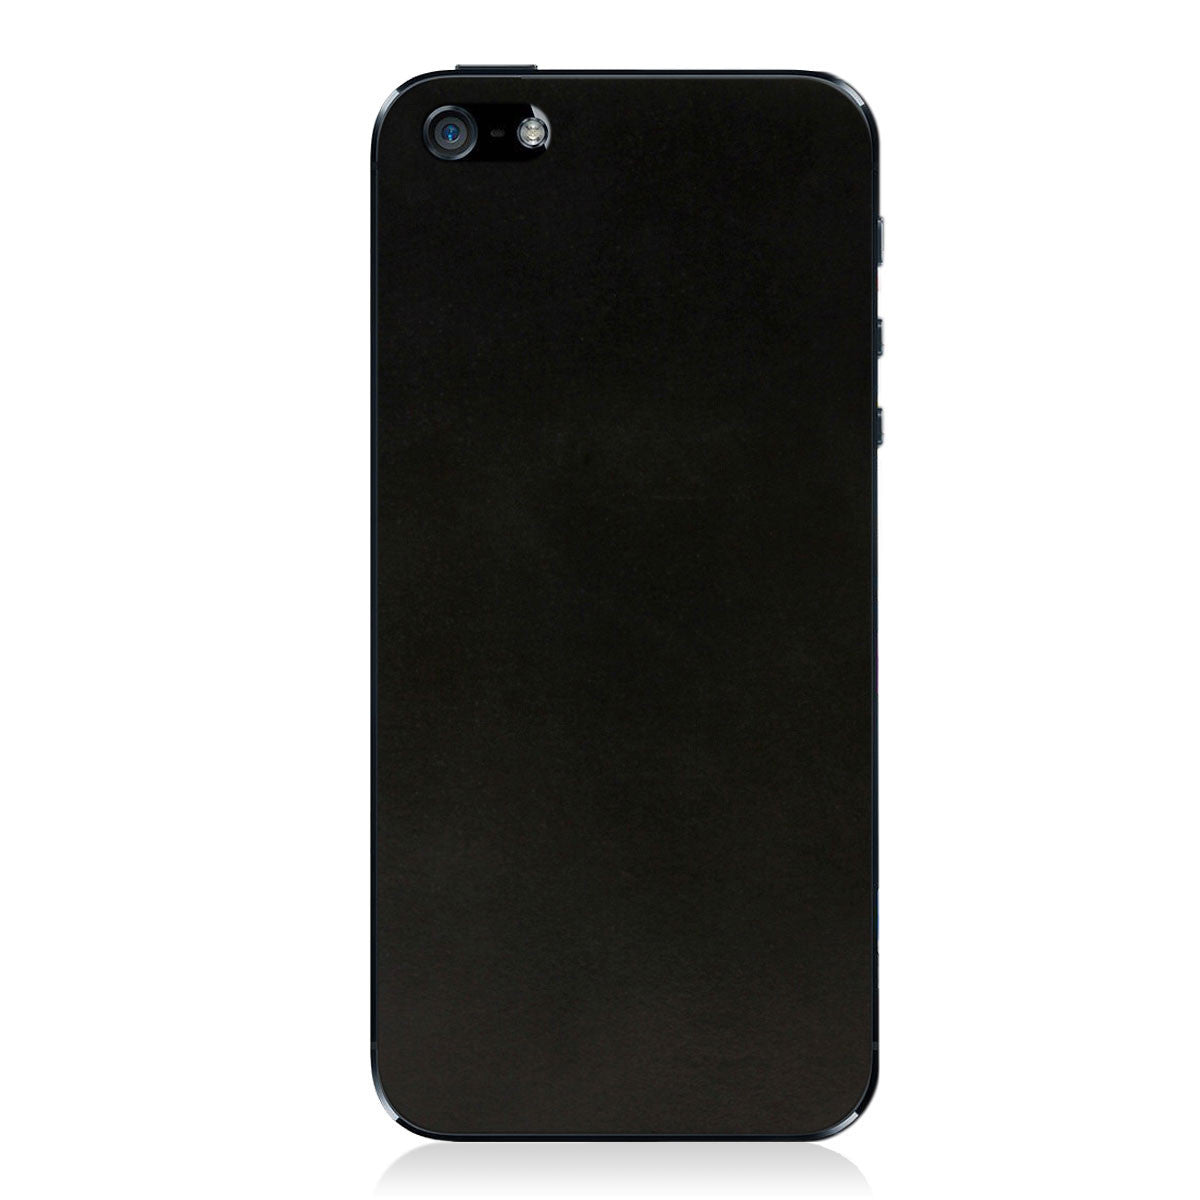 Matte Black iPhone 5 - 5S - SE Shell Cordovan Skin